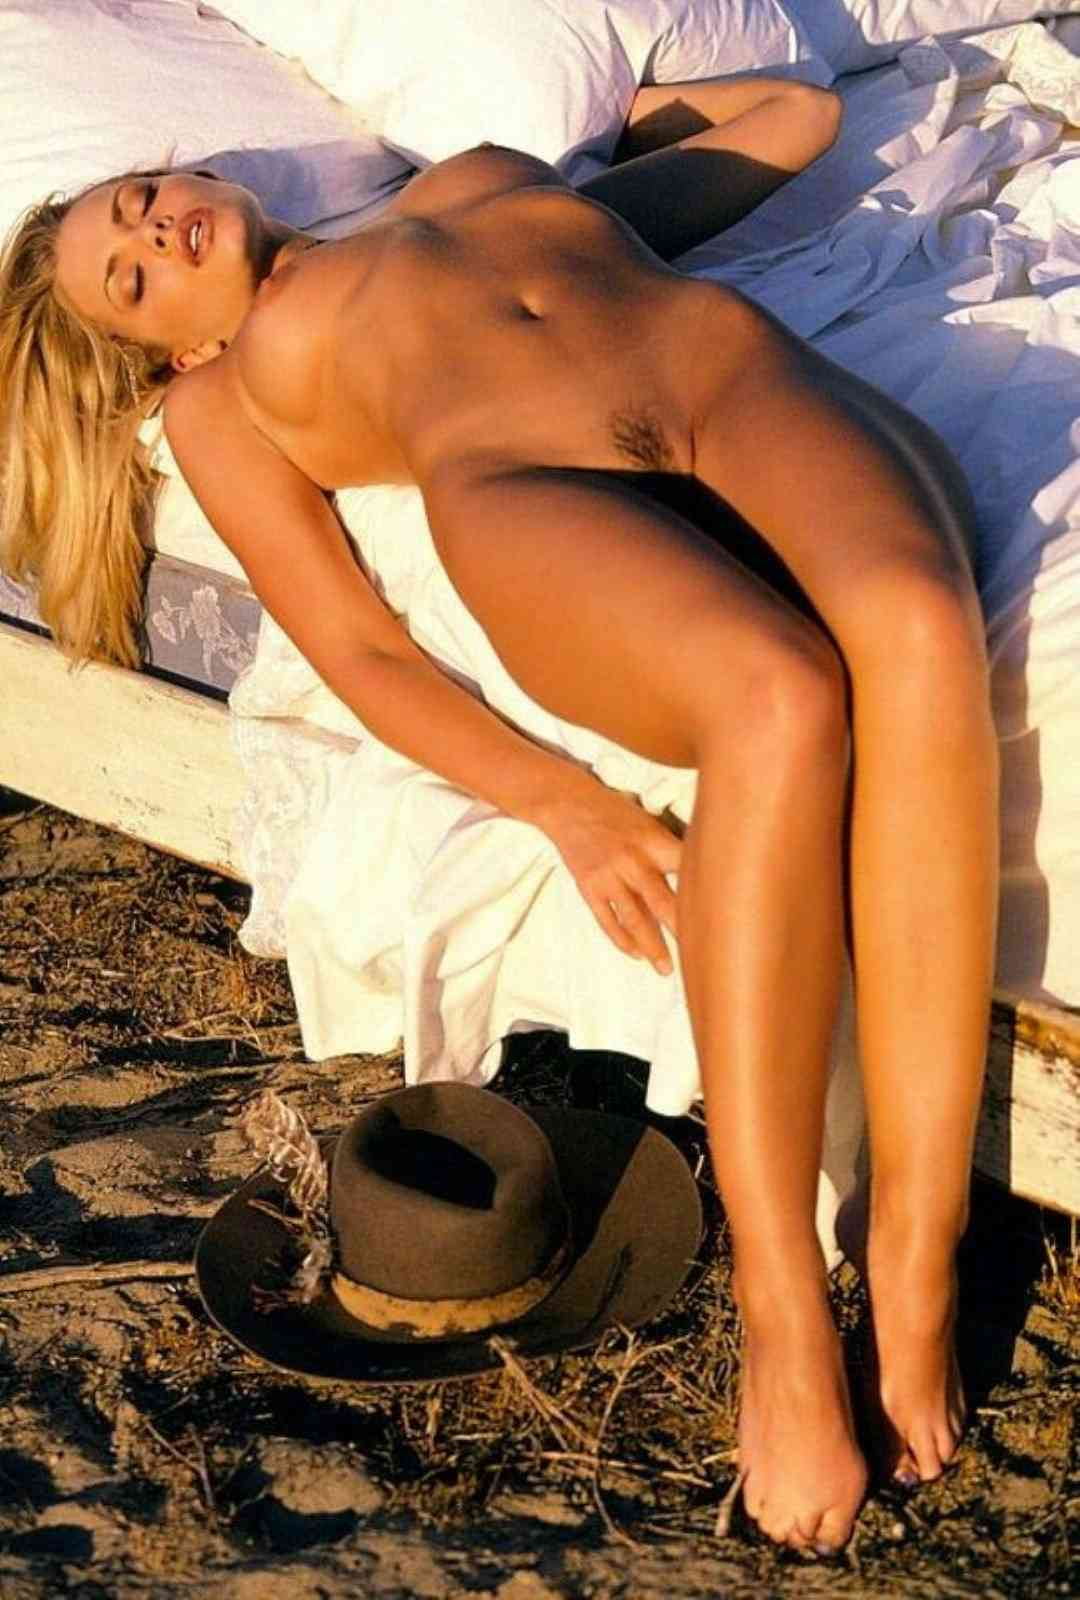 Jaime Pressly Nude Pictures Rating 92610